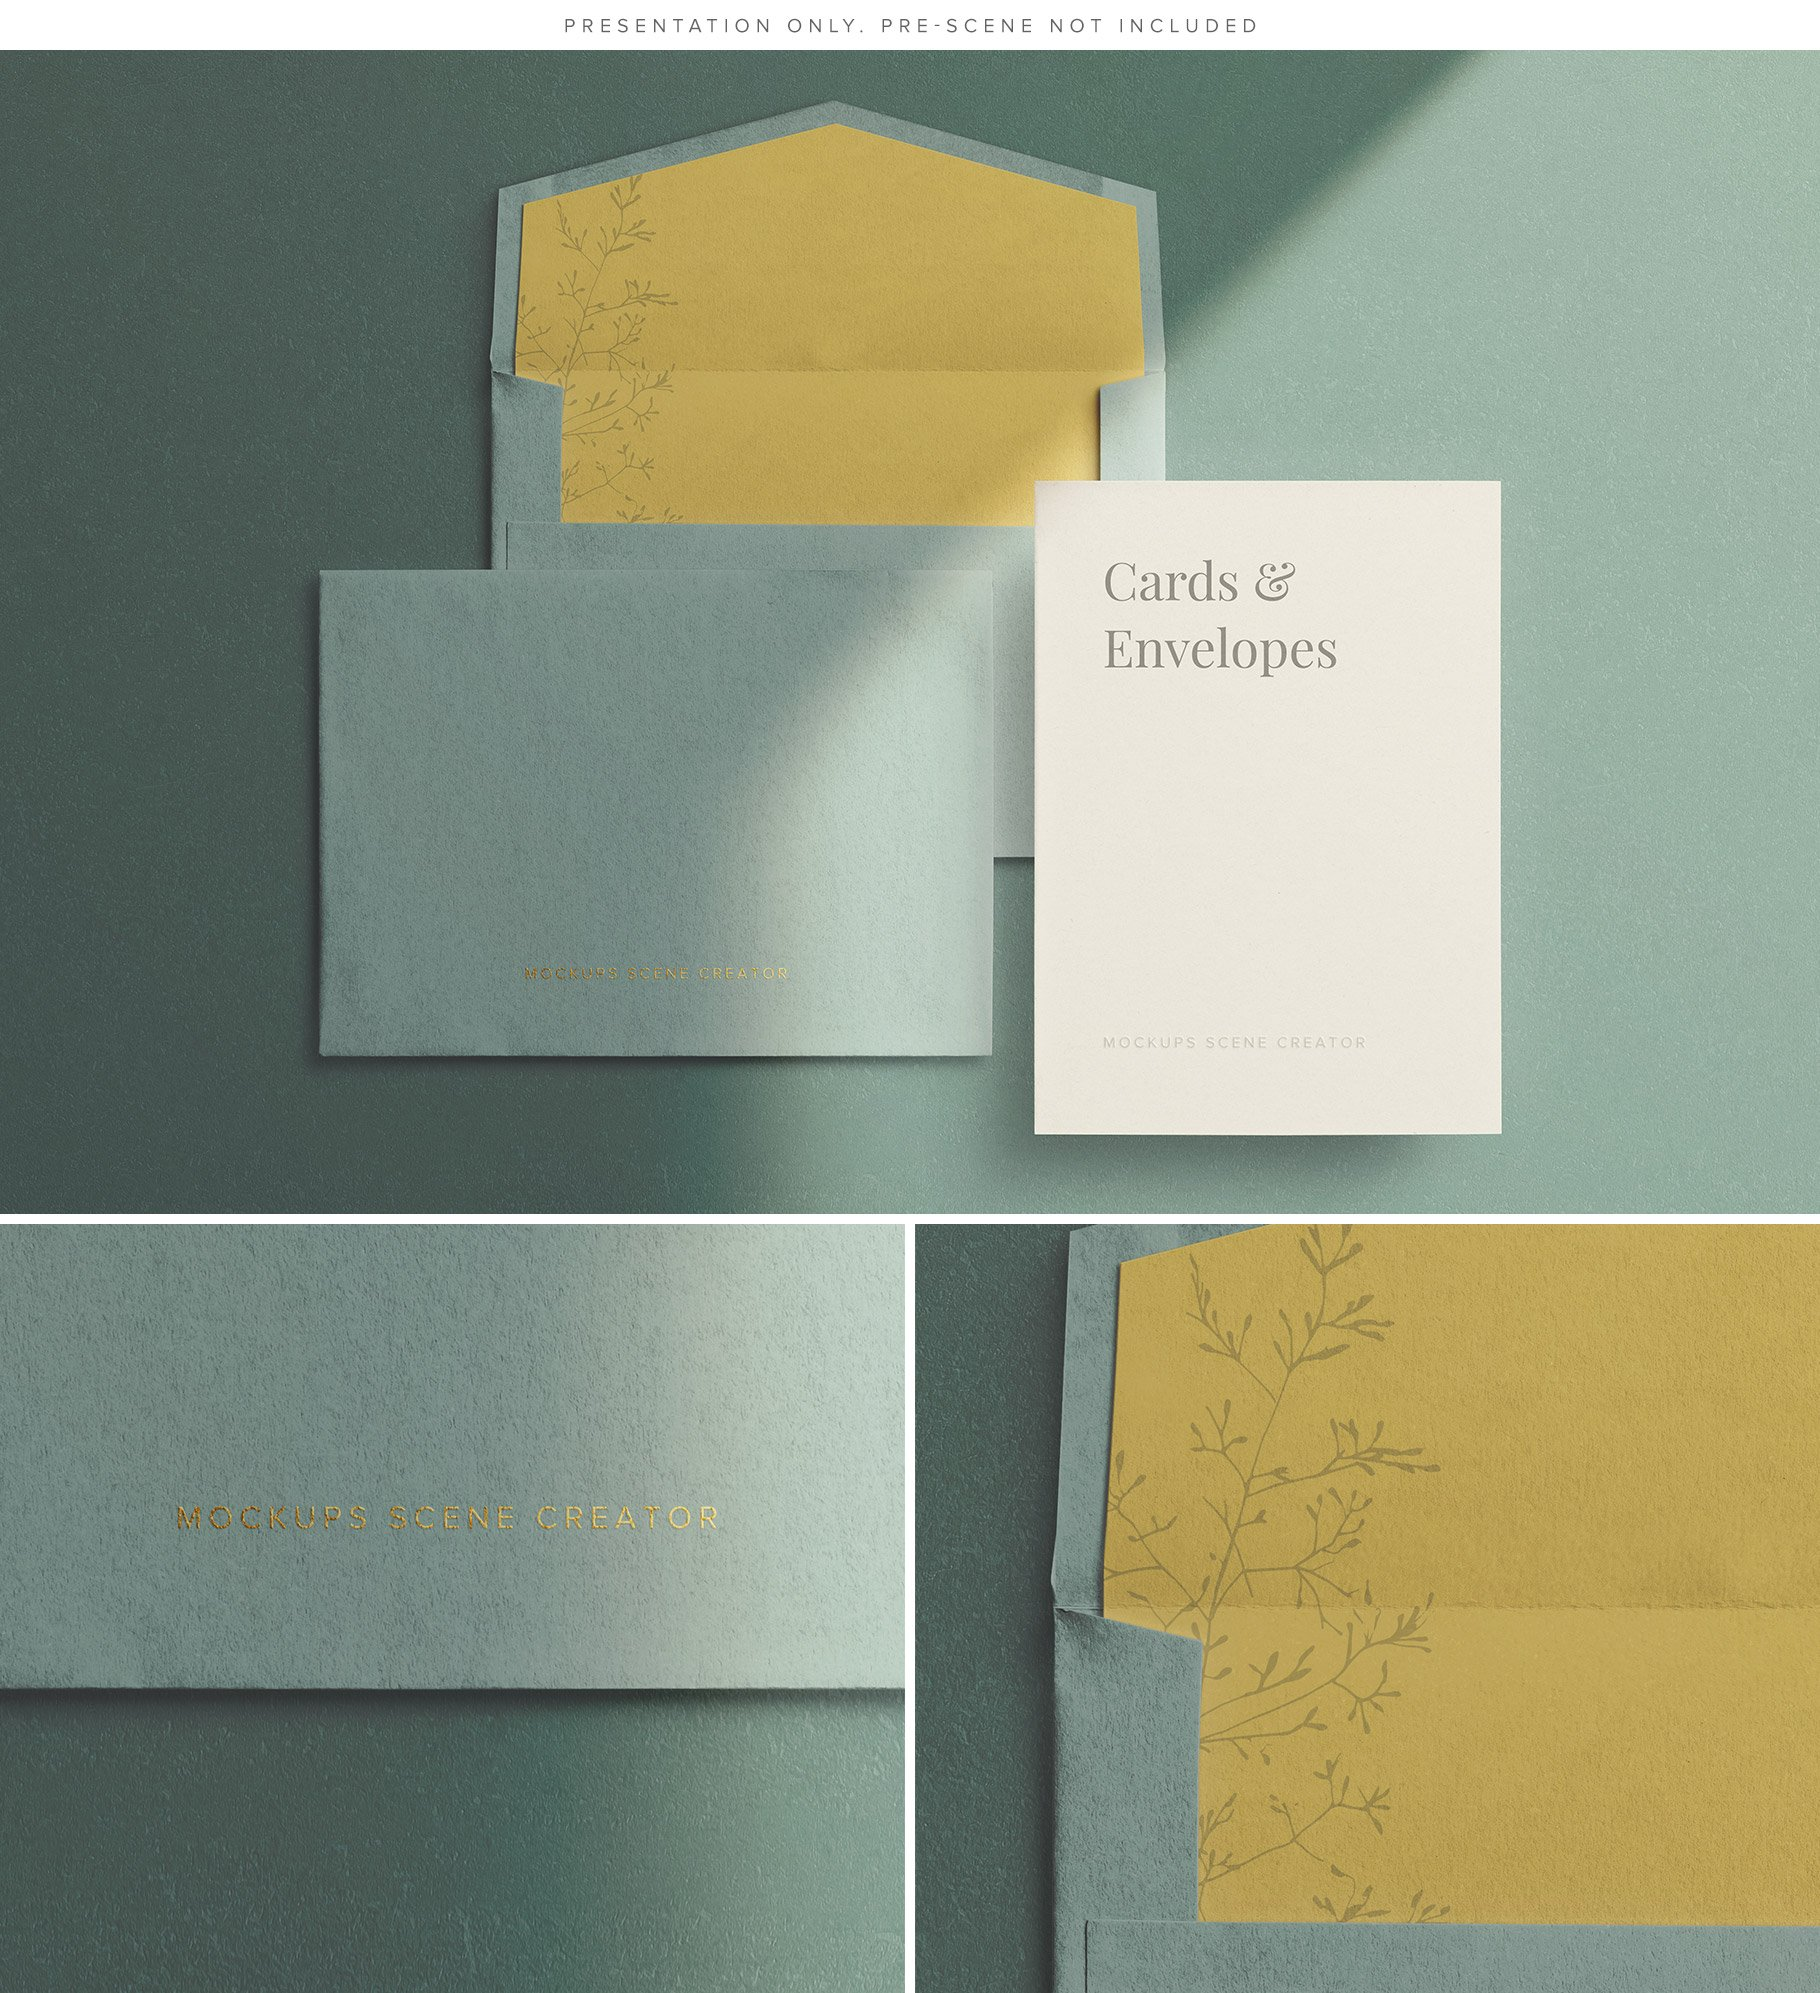 cards and envelopes mockup scene creator example 2 customscene